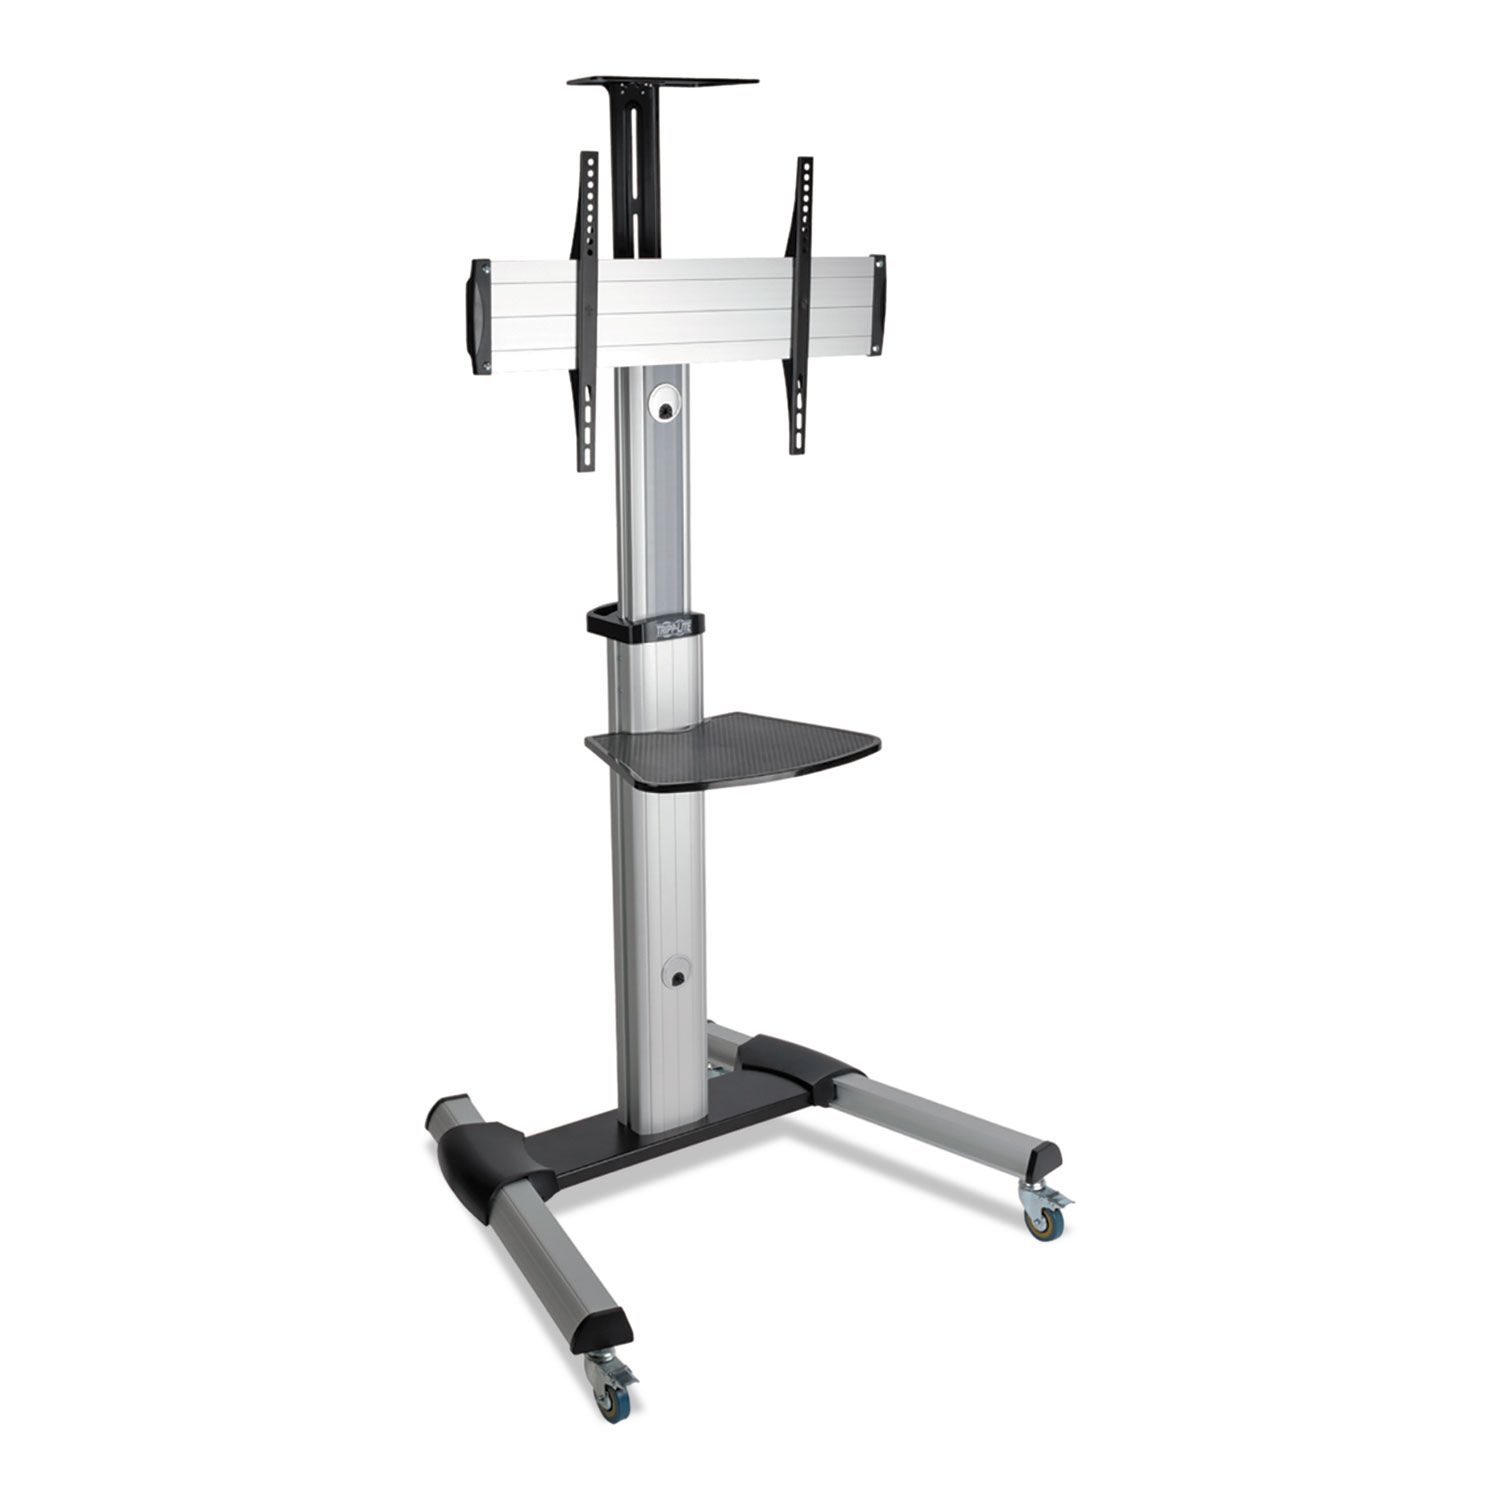 """Mobile Flat/Curved Panel Floor Stand for 32"""" to 70"""" TVs/Monitors, up to 110 lbs"""